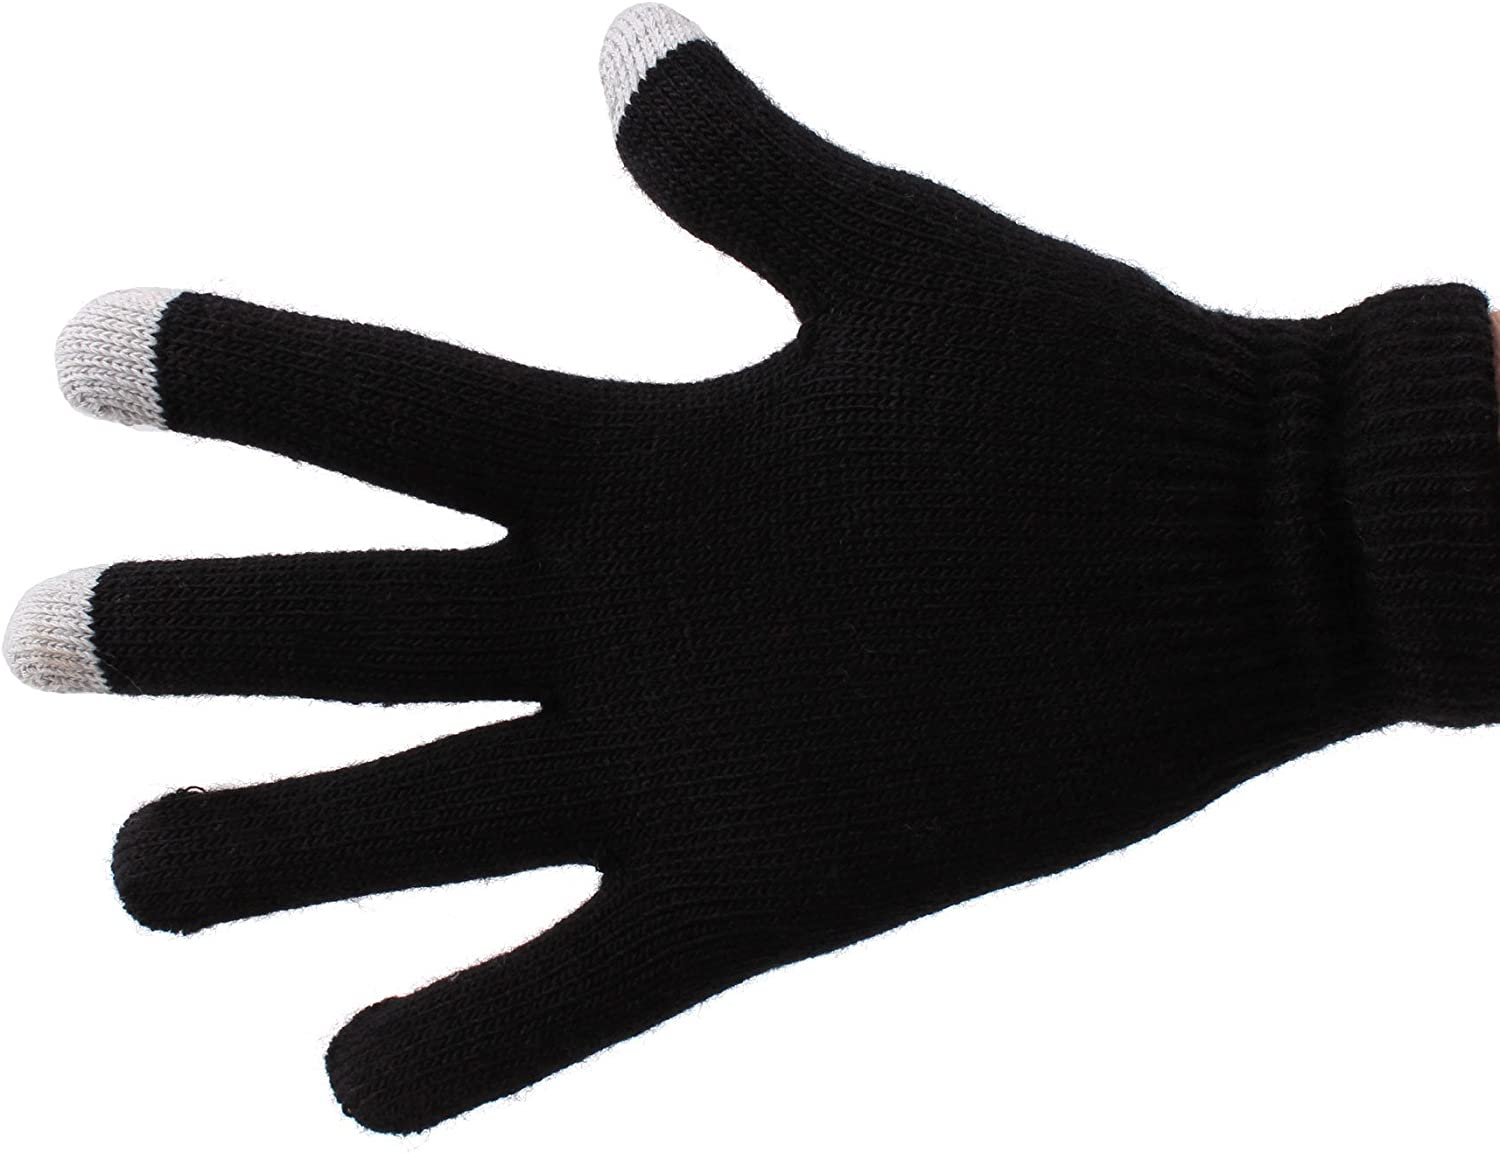 DURAGADGET Black Touchscreen Compatible Gloves - Compatible with The ASUS Google Nexus 7 II | The Original Google Nexus 7 8GB 16GB 32GB | Acer Iconia Tab A510 & A100 Tablet (Size Large)